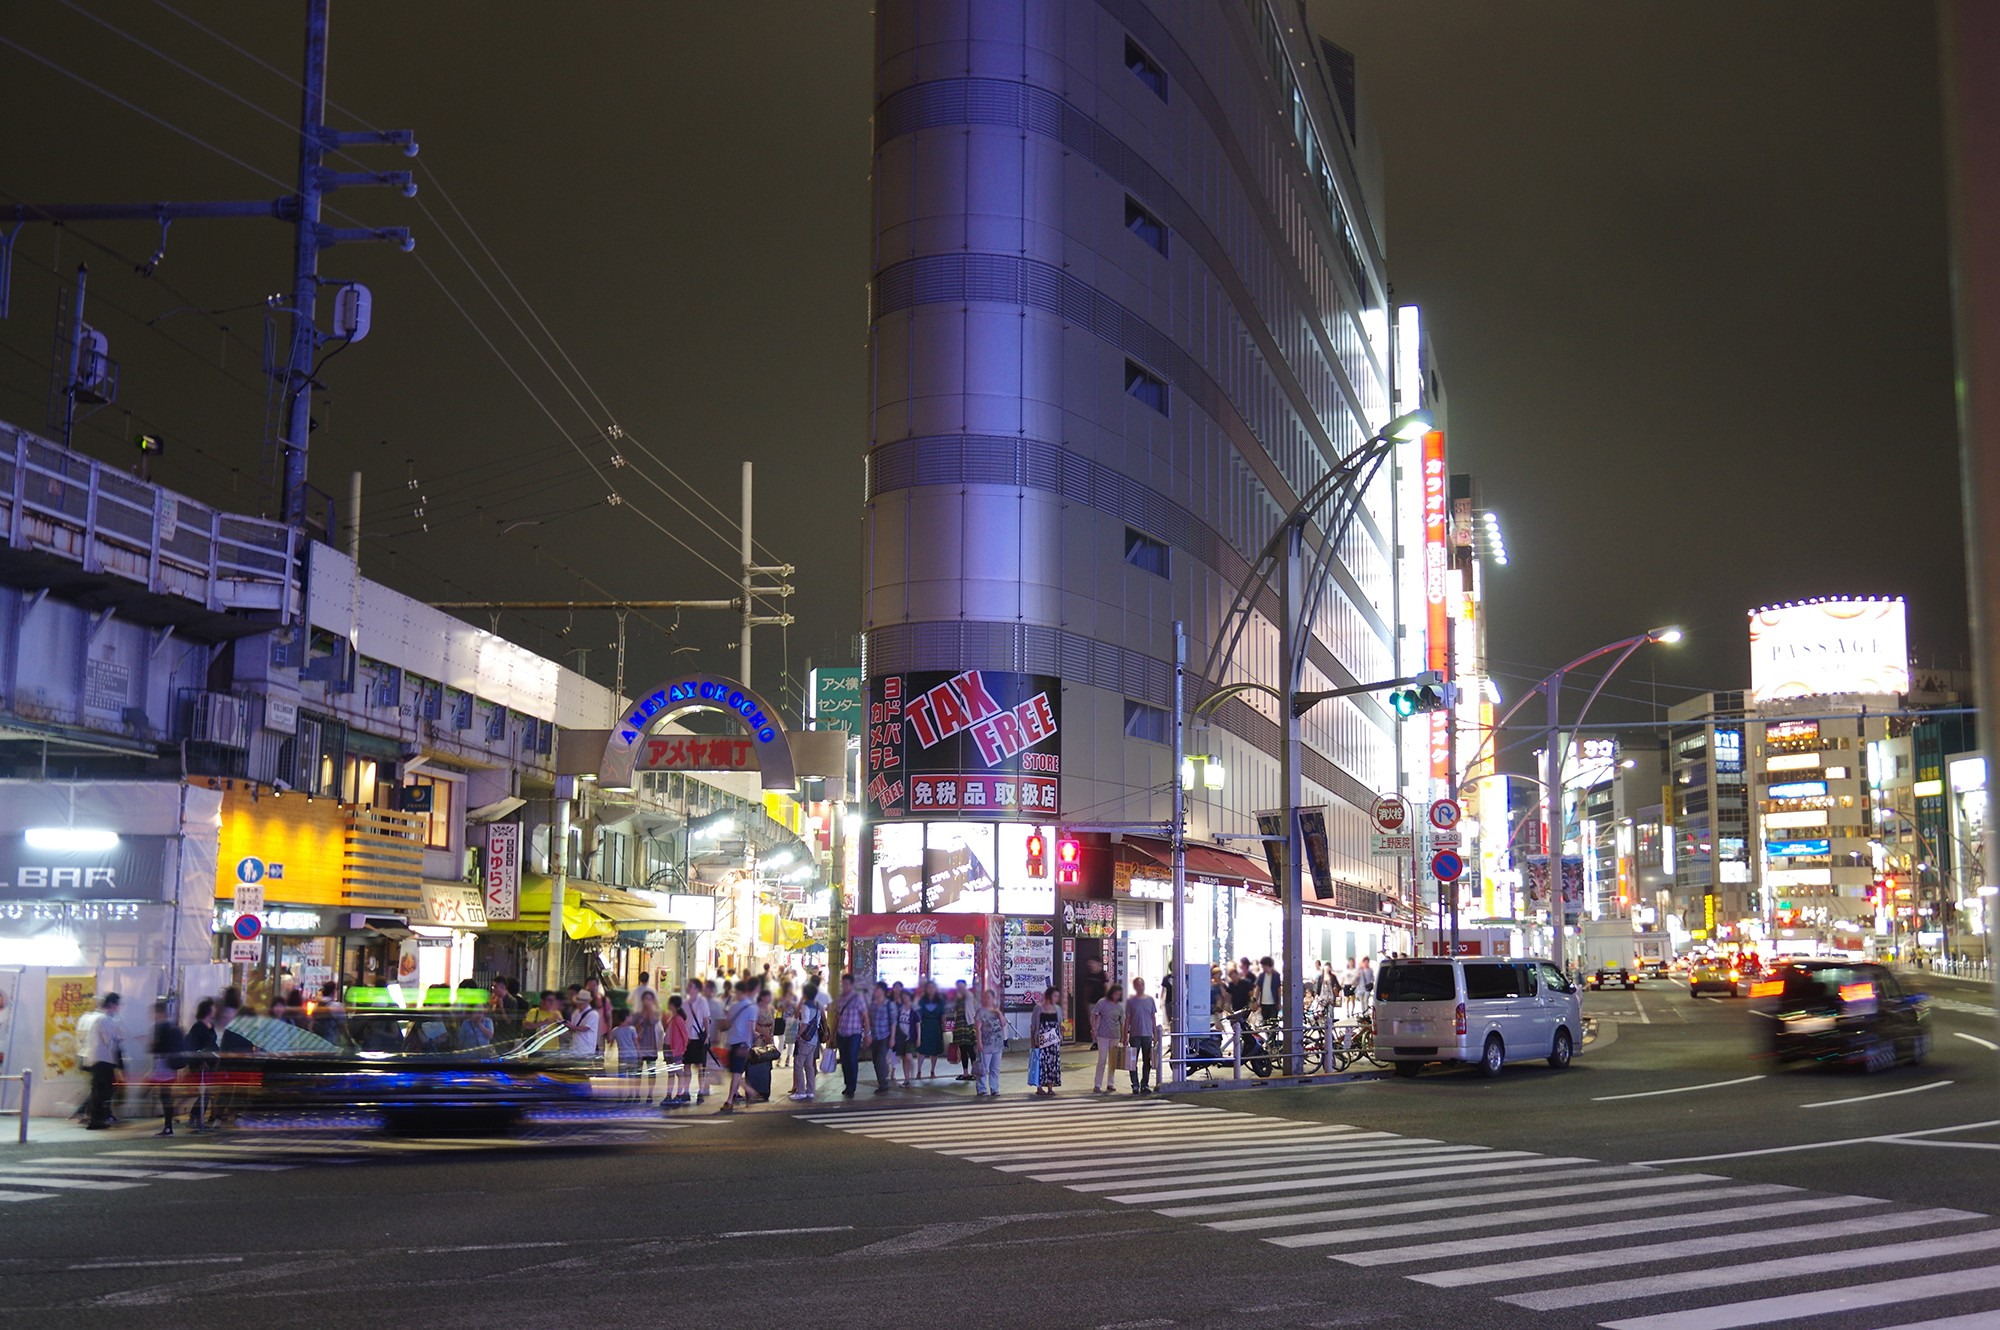 It S A Great Place To Experience Tokyo Local Vibes And Food There Are Numbers Of Long Elished Restaurants Around